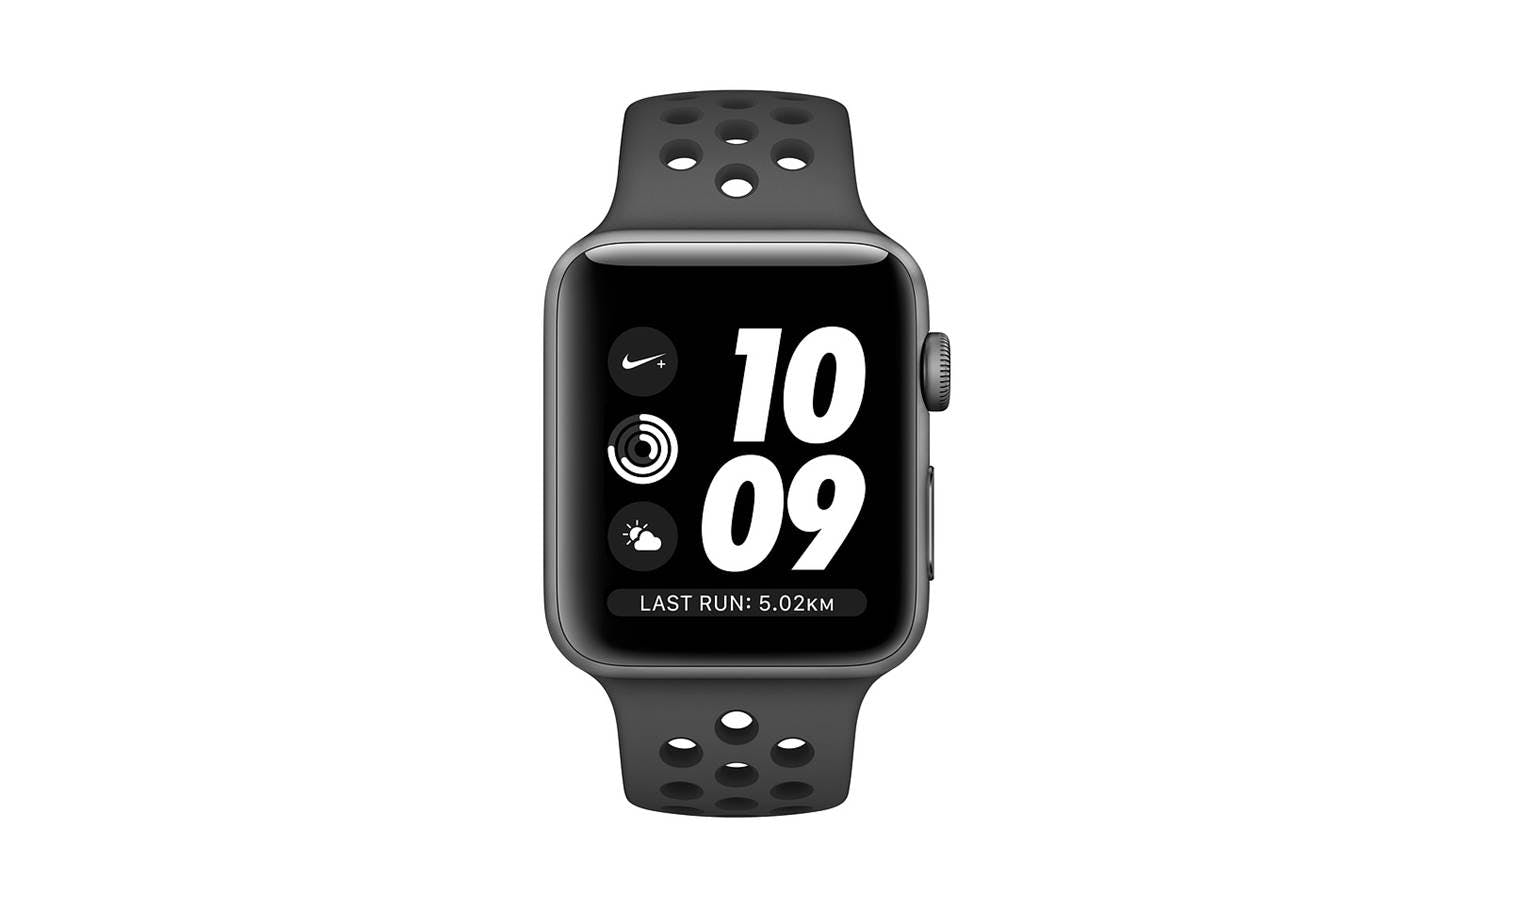 7fbaeaf82d2 Apple Watch Series 3 Nike+ MTF42 (GPS) 42mm - Space Grey Aluminium Case  with Anthracite/Black Nike Sport Band | Harvey Norman Singapore